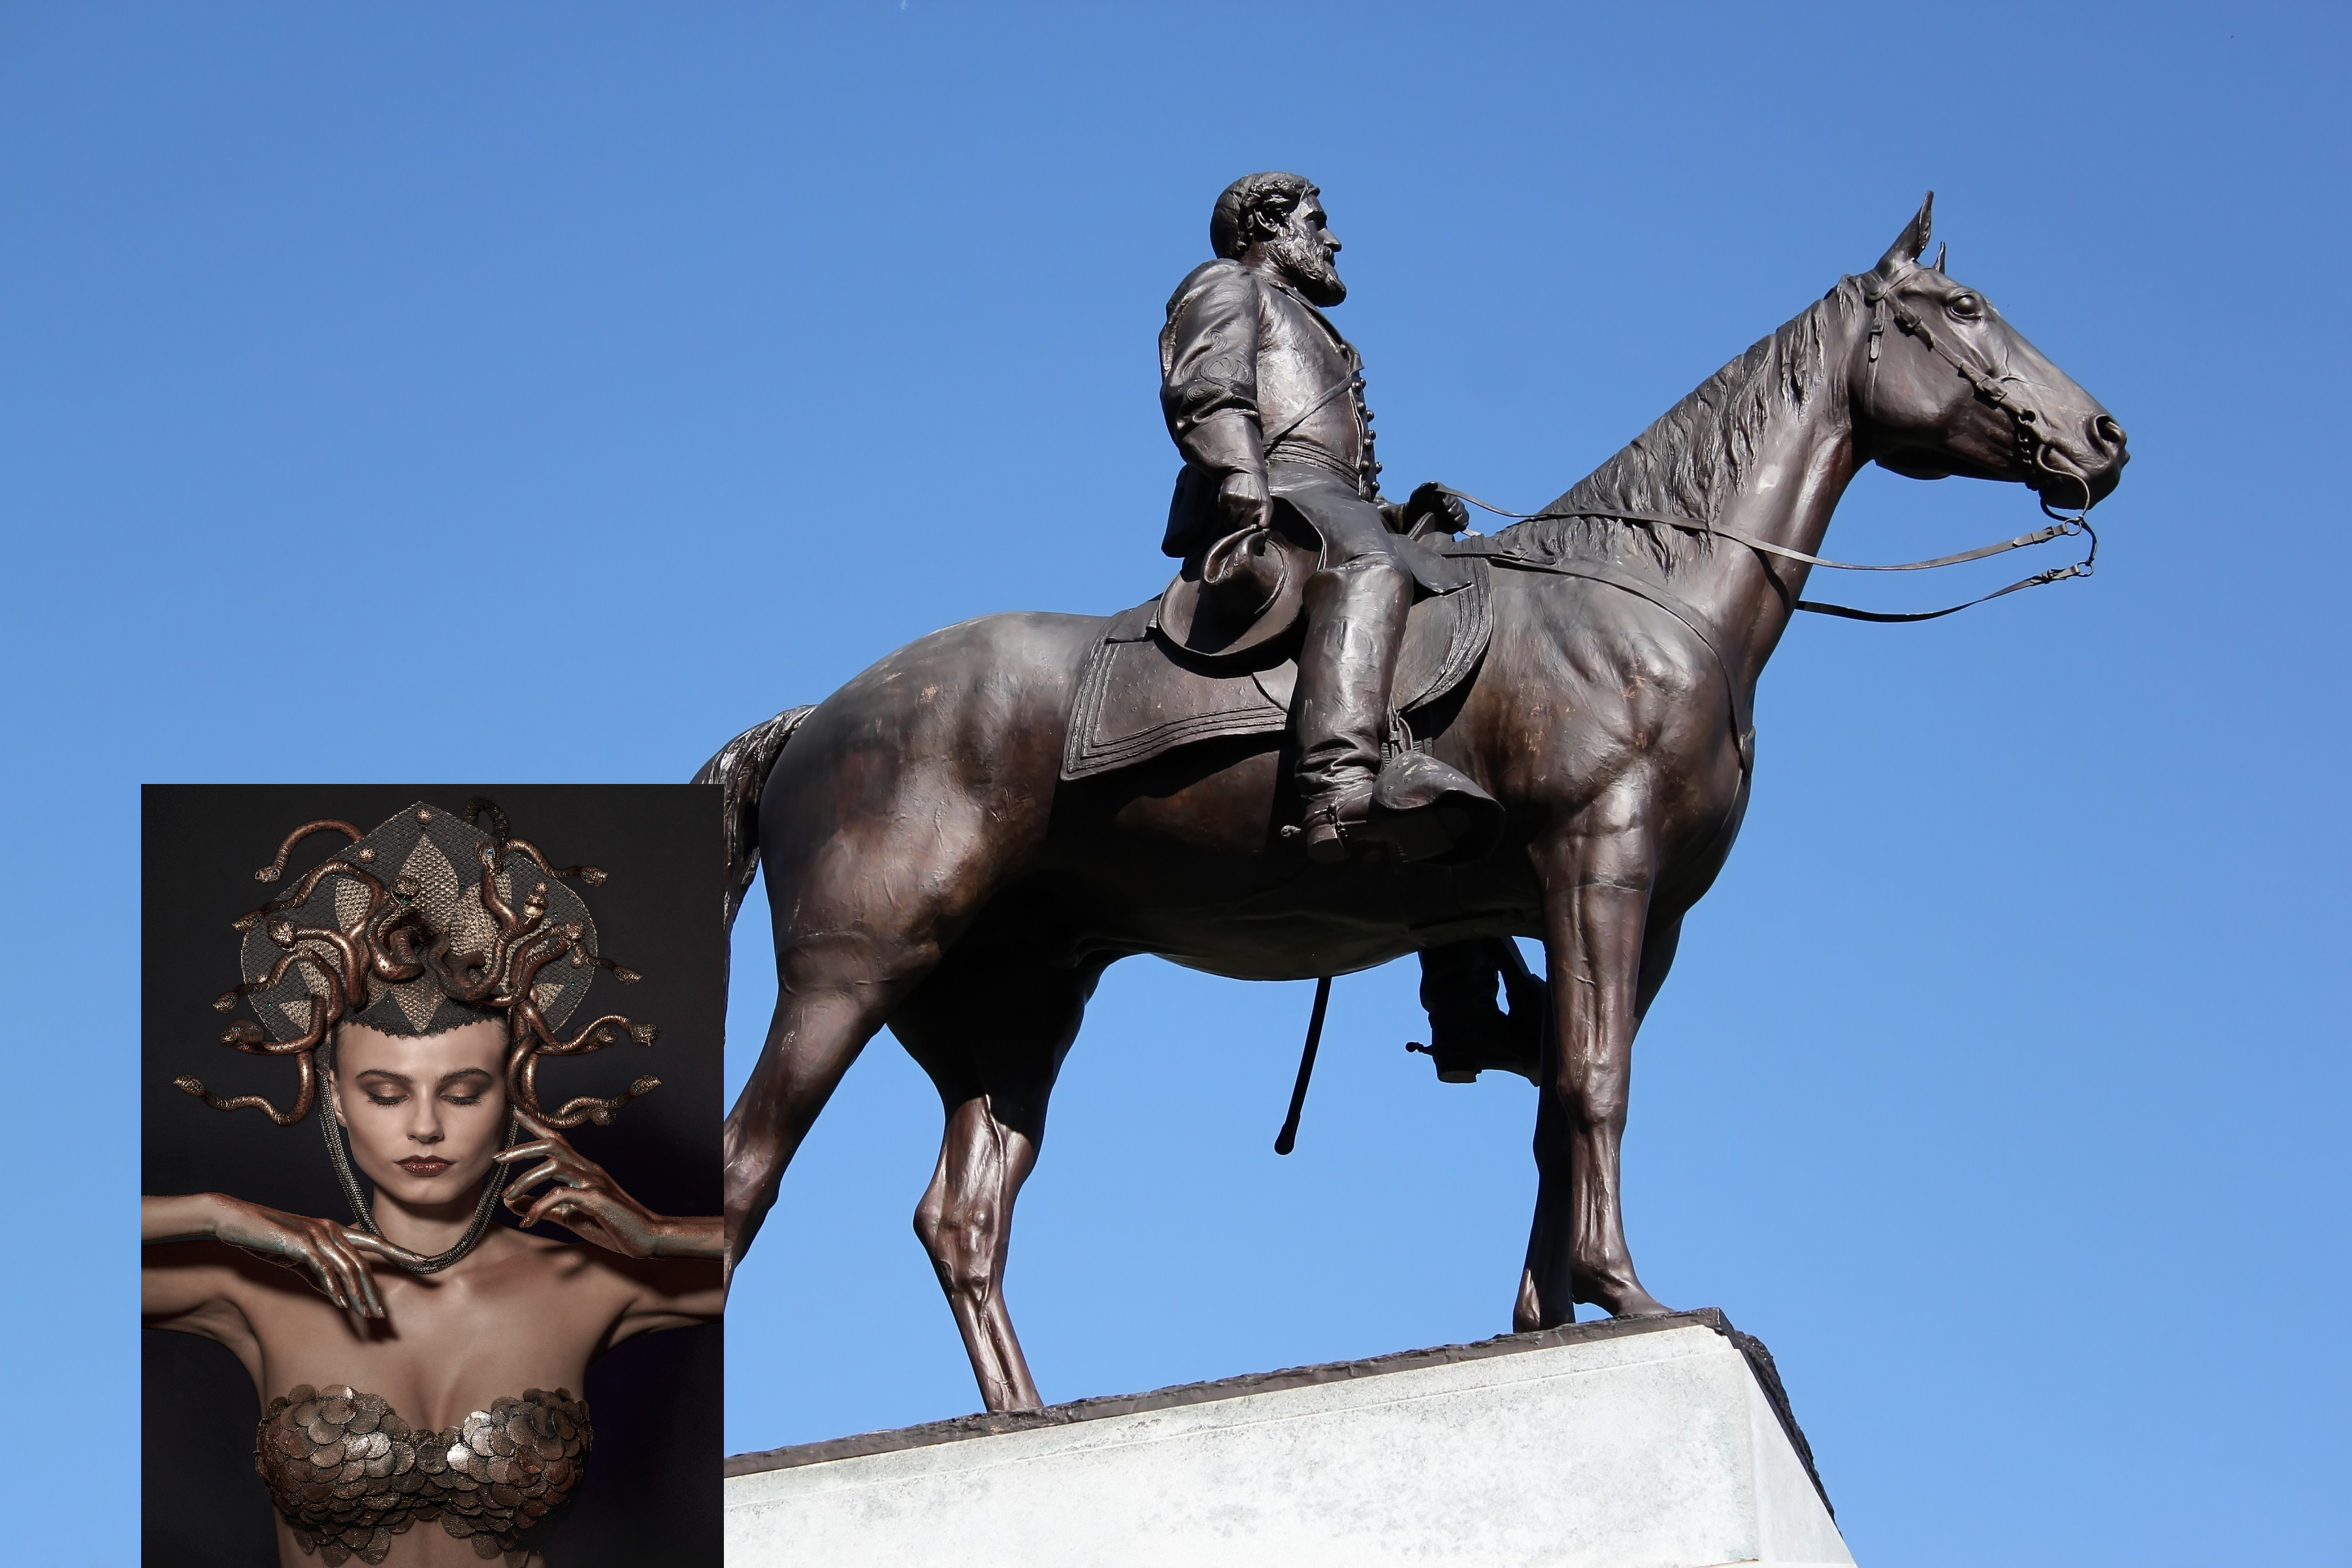 Medusa makes more statues of racists to replace old statues of racists